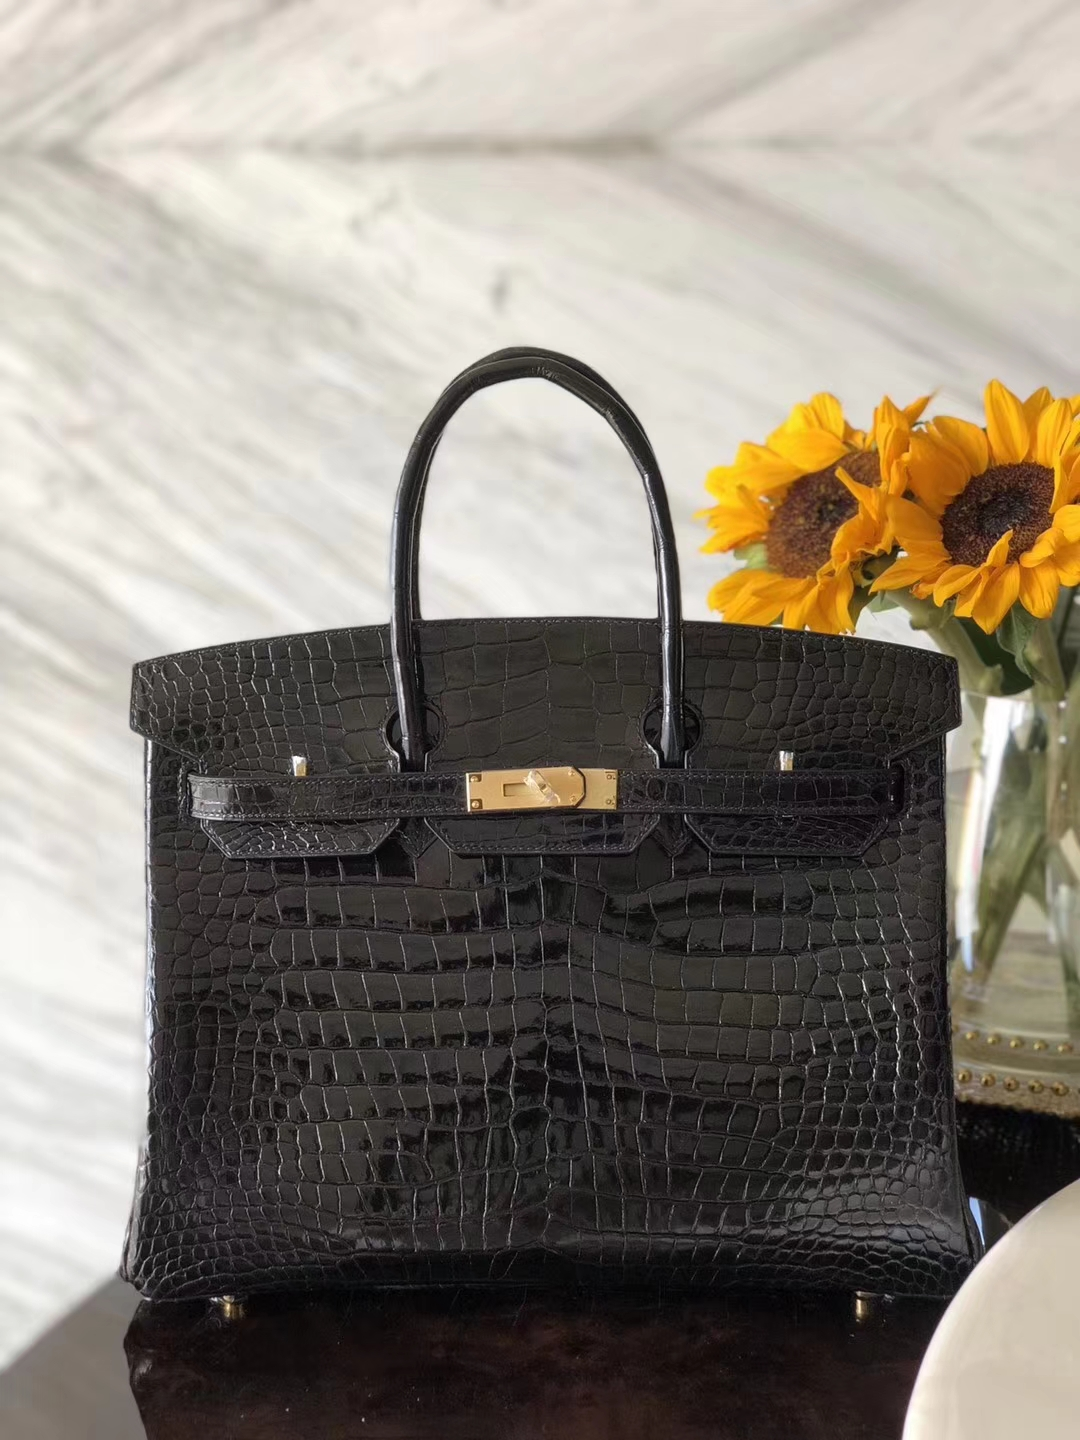 Sale Hermes Porosus Shiny Crocodile Birkin35CM Bag in CK89 Black